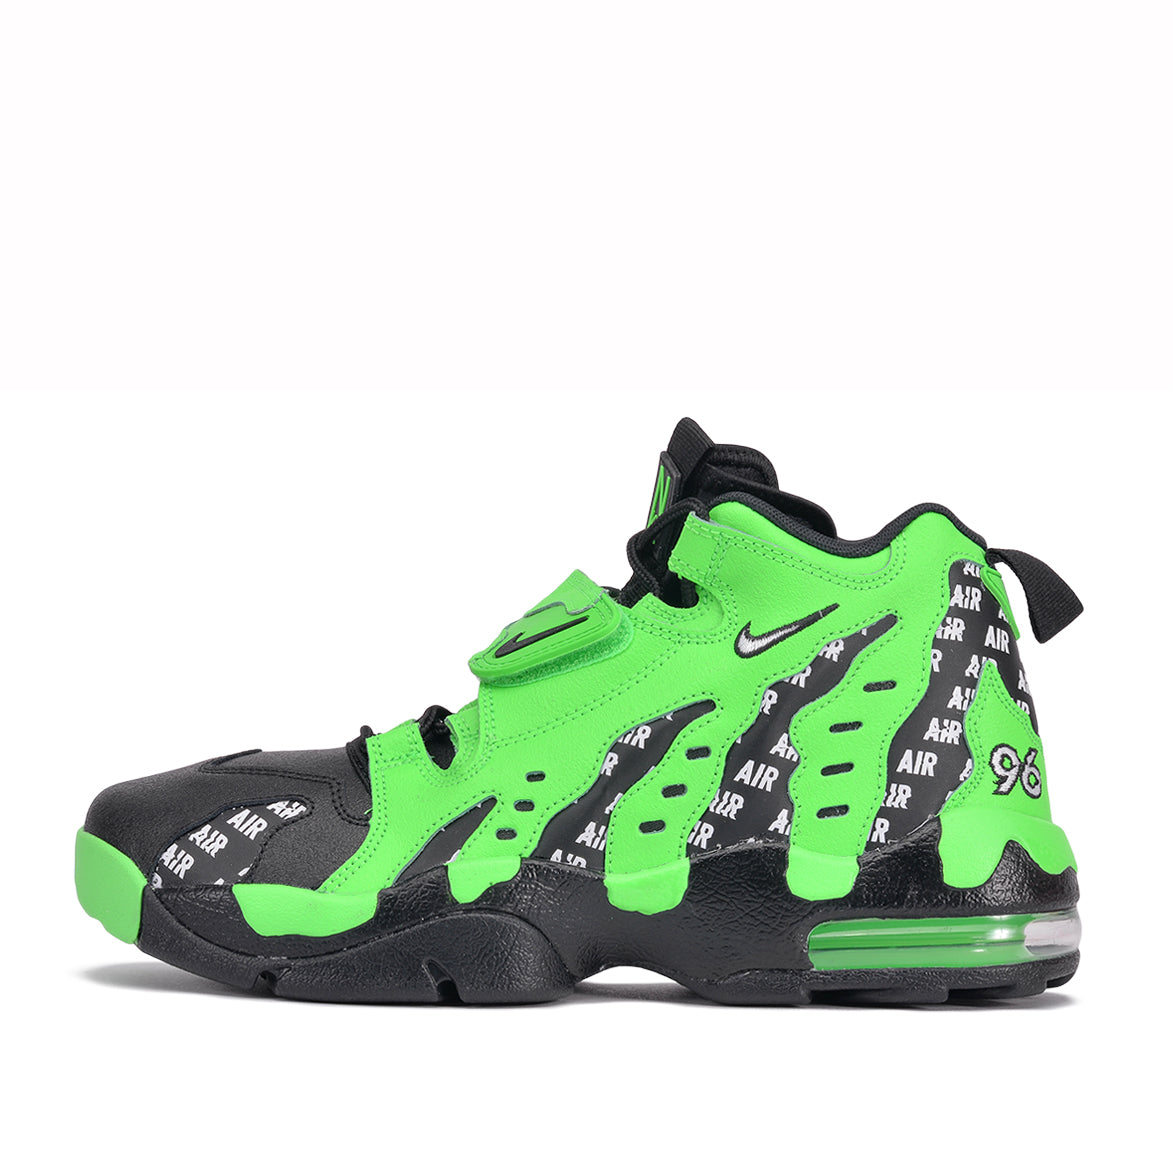 finest selection b4fc2 69e26 AIR DT MAX `96 SOA - RAGE GREEN   City Blue